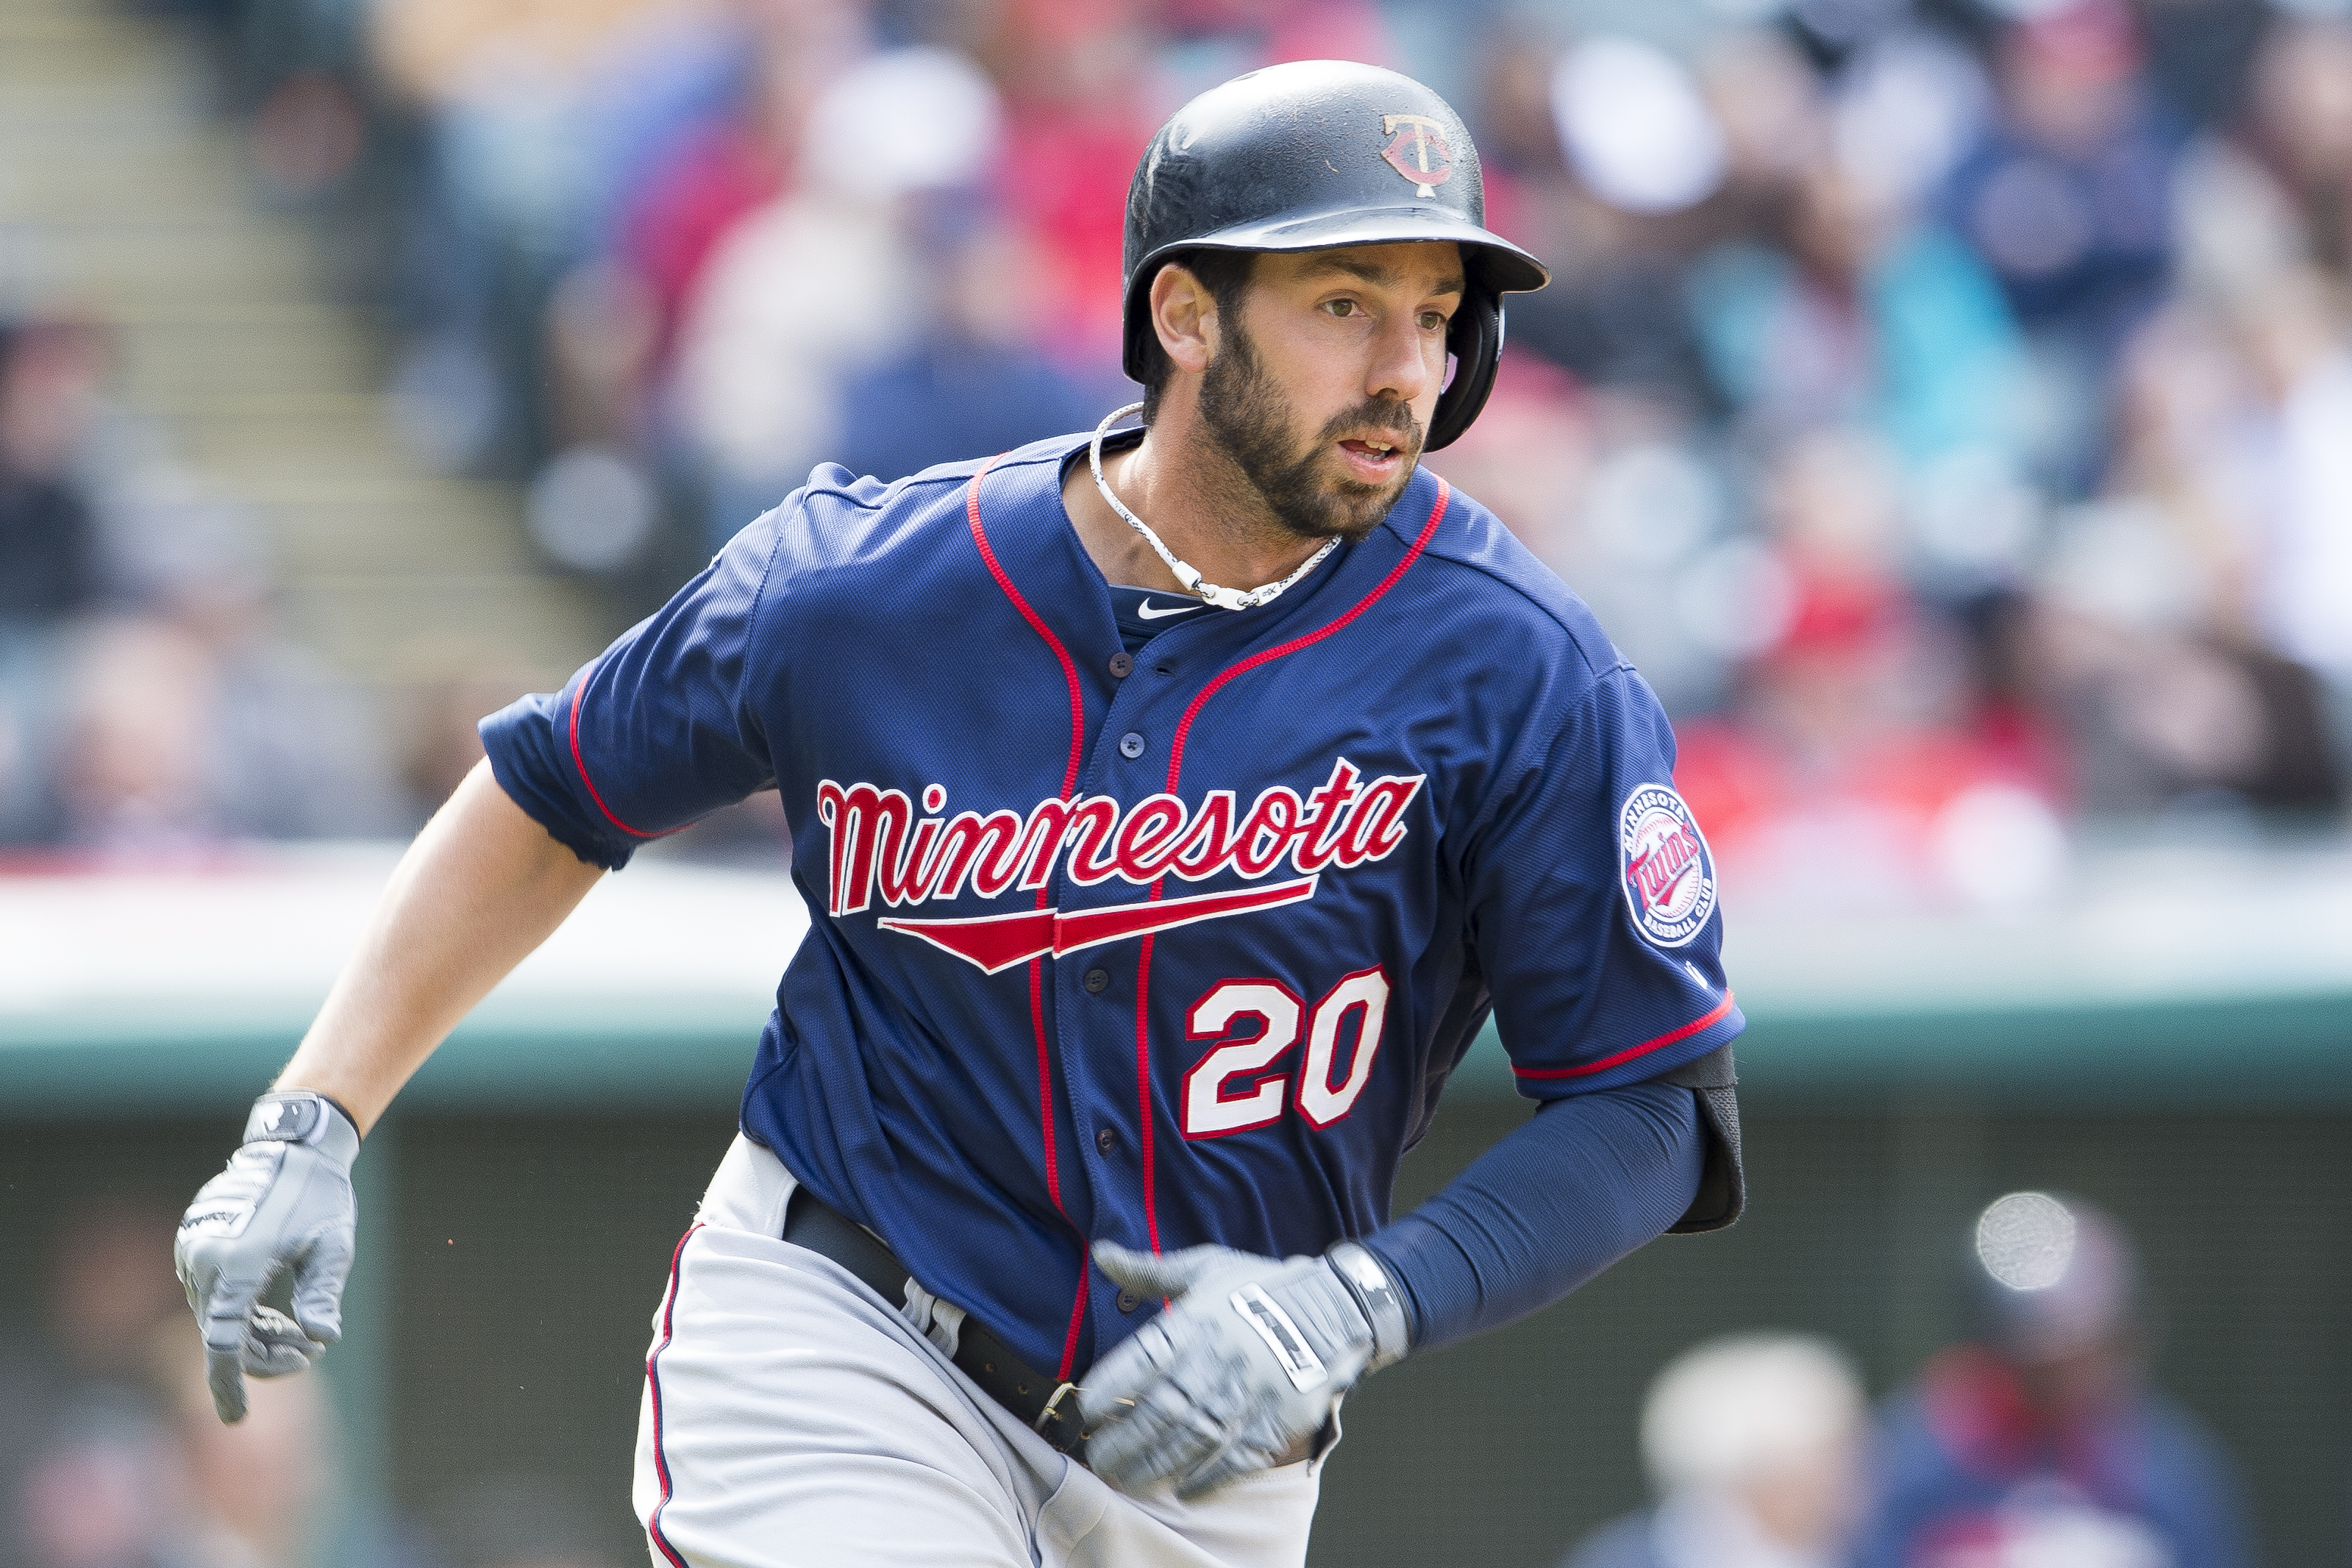 CLEVELAND, OH - APRIL 6: Chris Colabello #20 of the Minnesota Twins runs the bases after hiting a three RBI double during the sixth inning against the Cleveland Indians at Progressive Field on April 6, 2014 in Cleveland, Ohio.